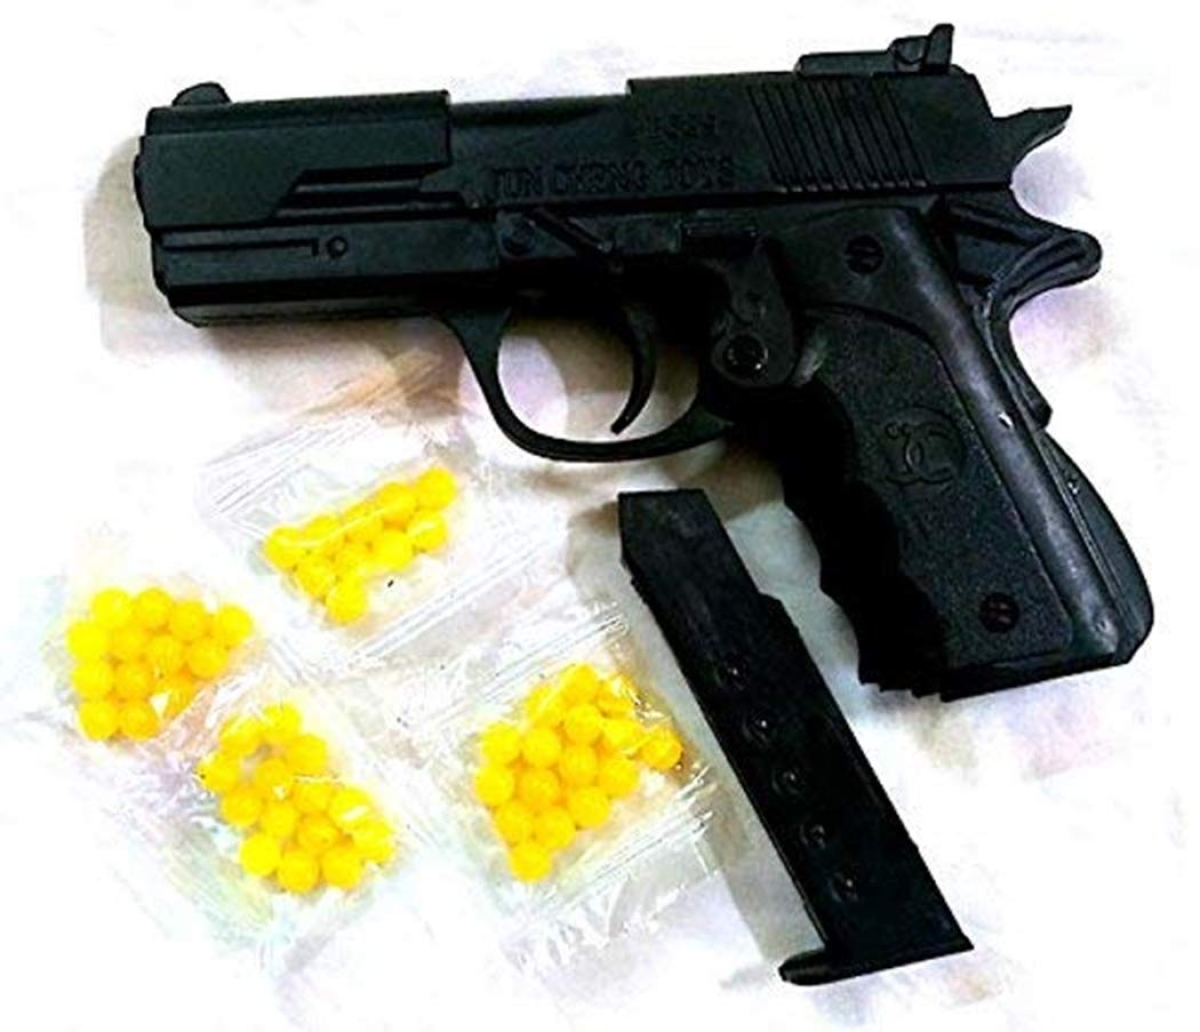 Mumbai Crime Watch: Two held for threatening residents with toy gun in Koparkhaiarne